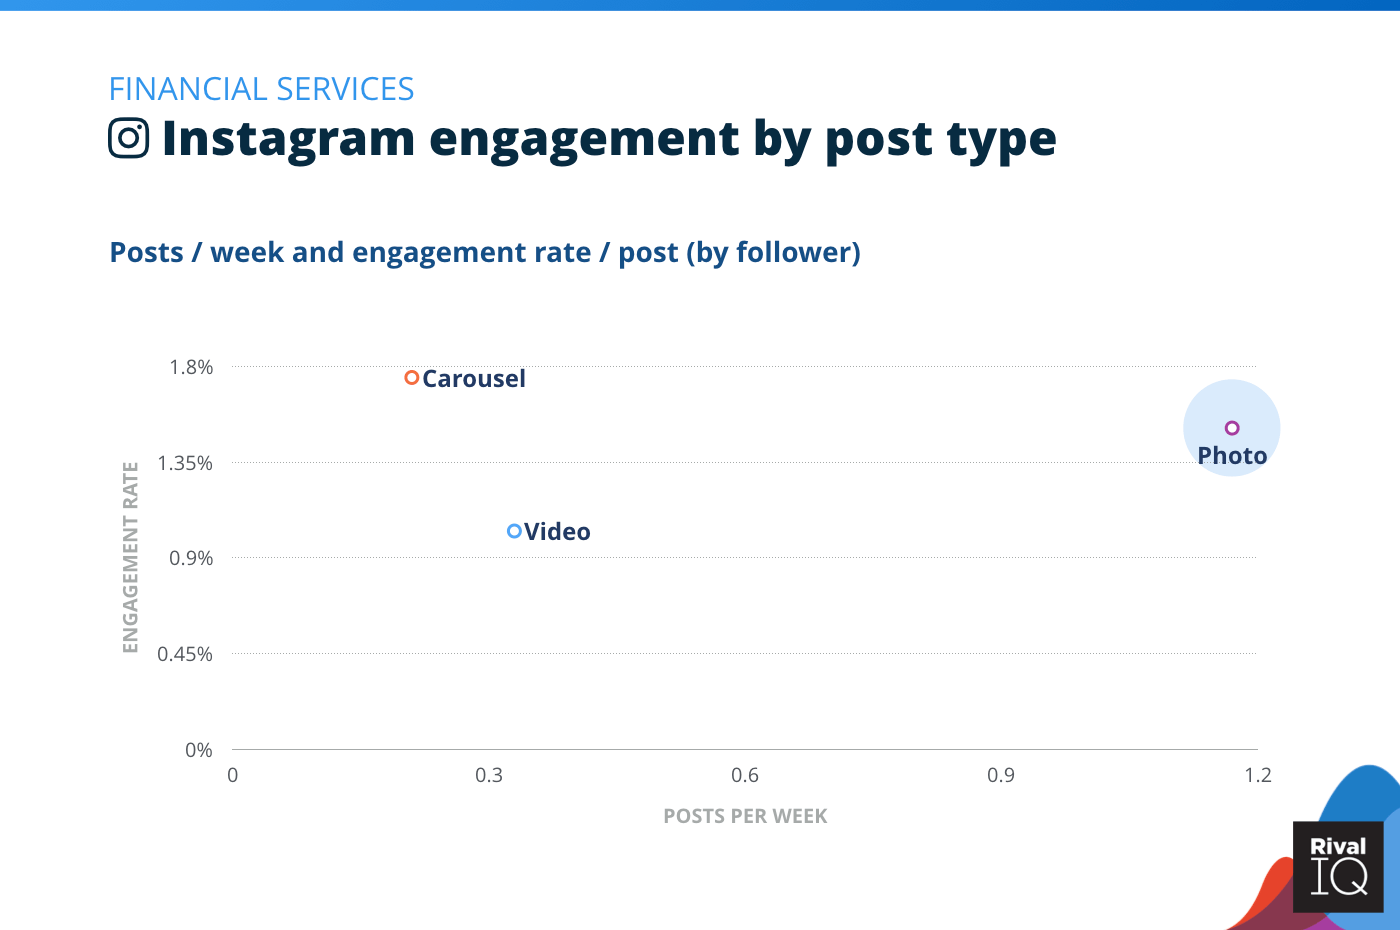 Chart of Instagram posts per week and engagement rate by post type, Financial Services